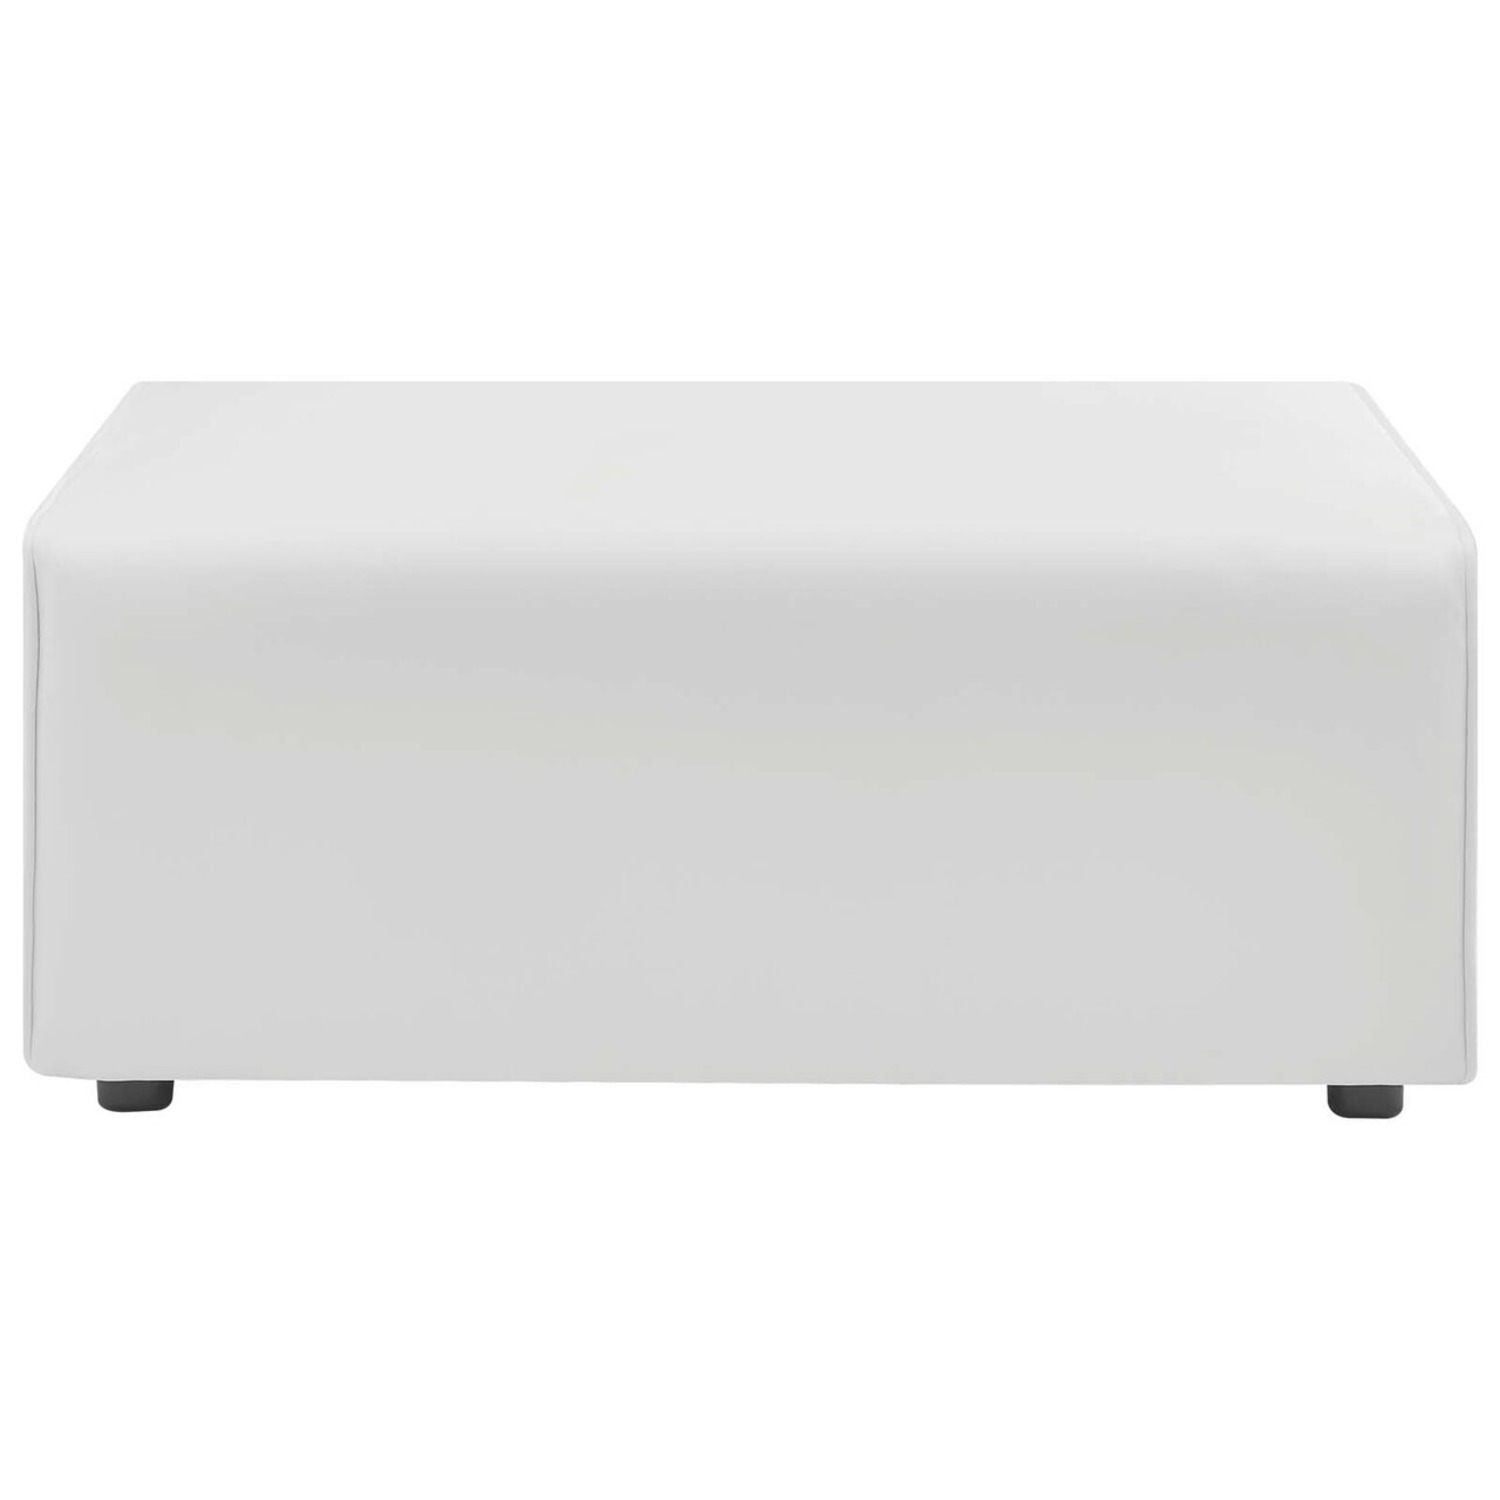 Ottoman In White Vegan Leather Upholstery - image-1